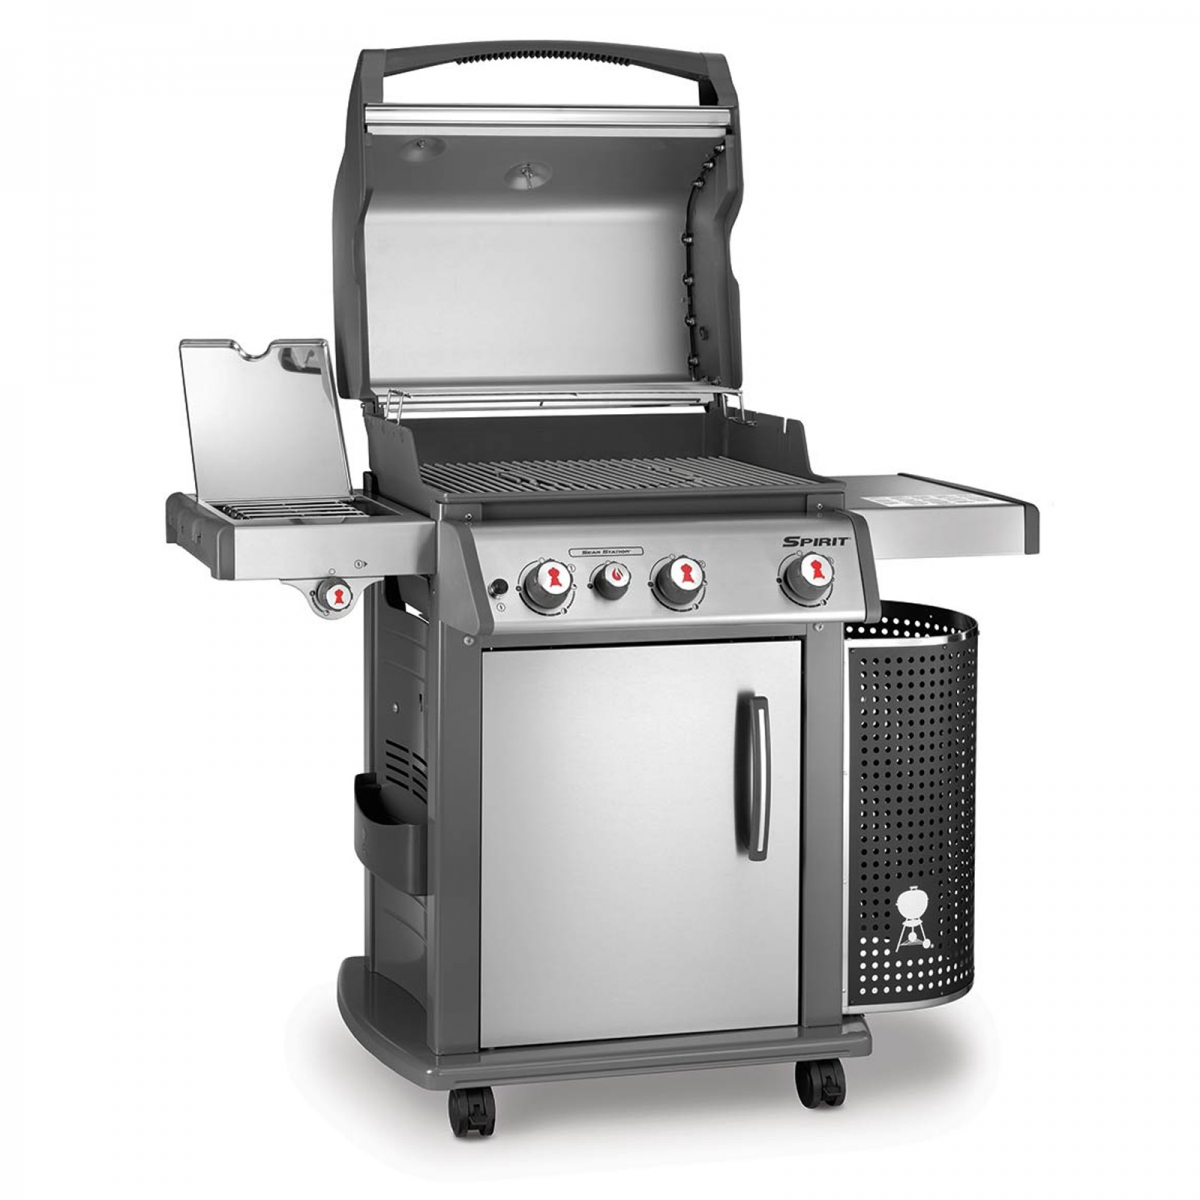 spirit premium s 330 gbs inox weber barbecue a gas il mondo del barbecue. Black Bedroom Furniture Sets. Home Design Ideas